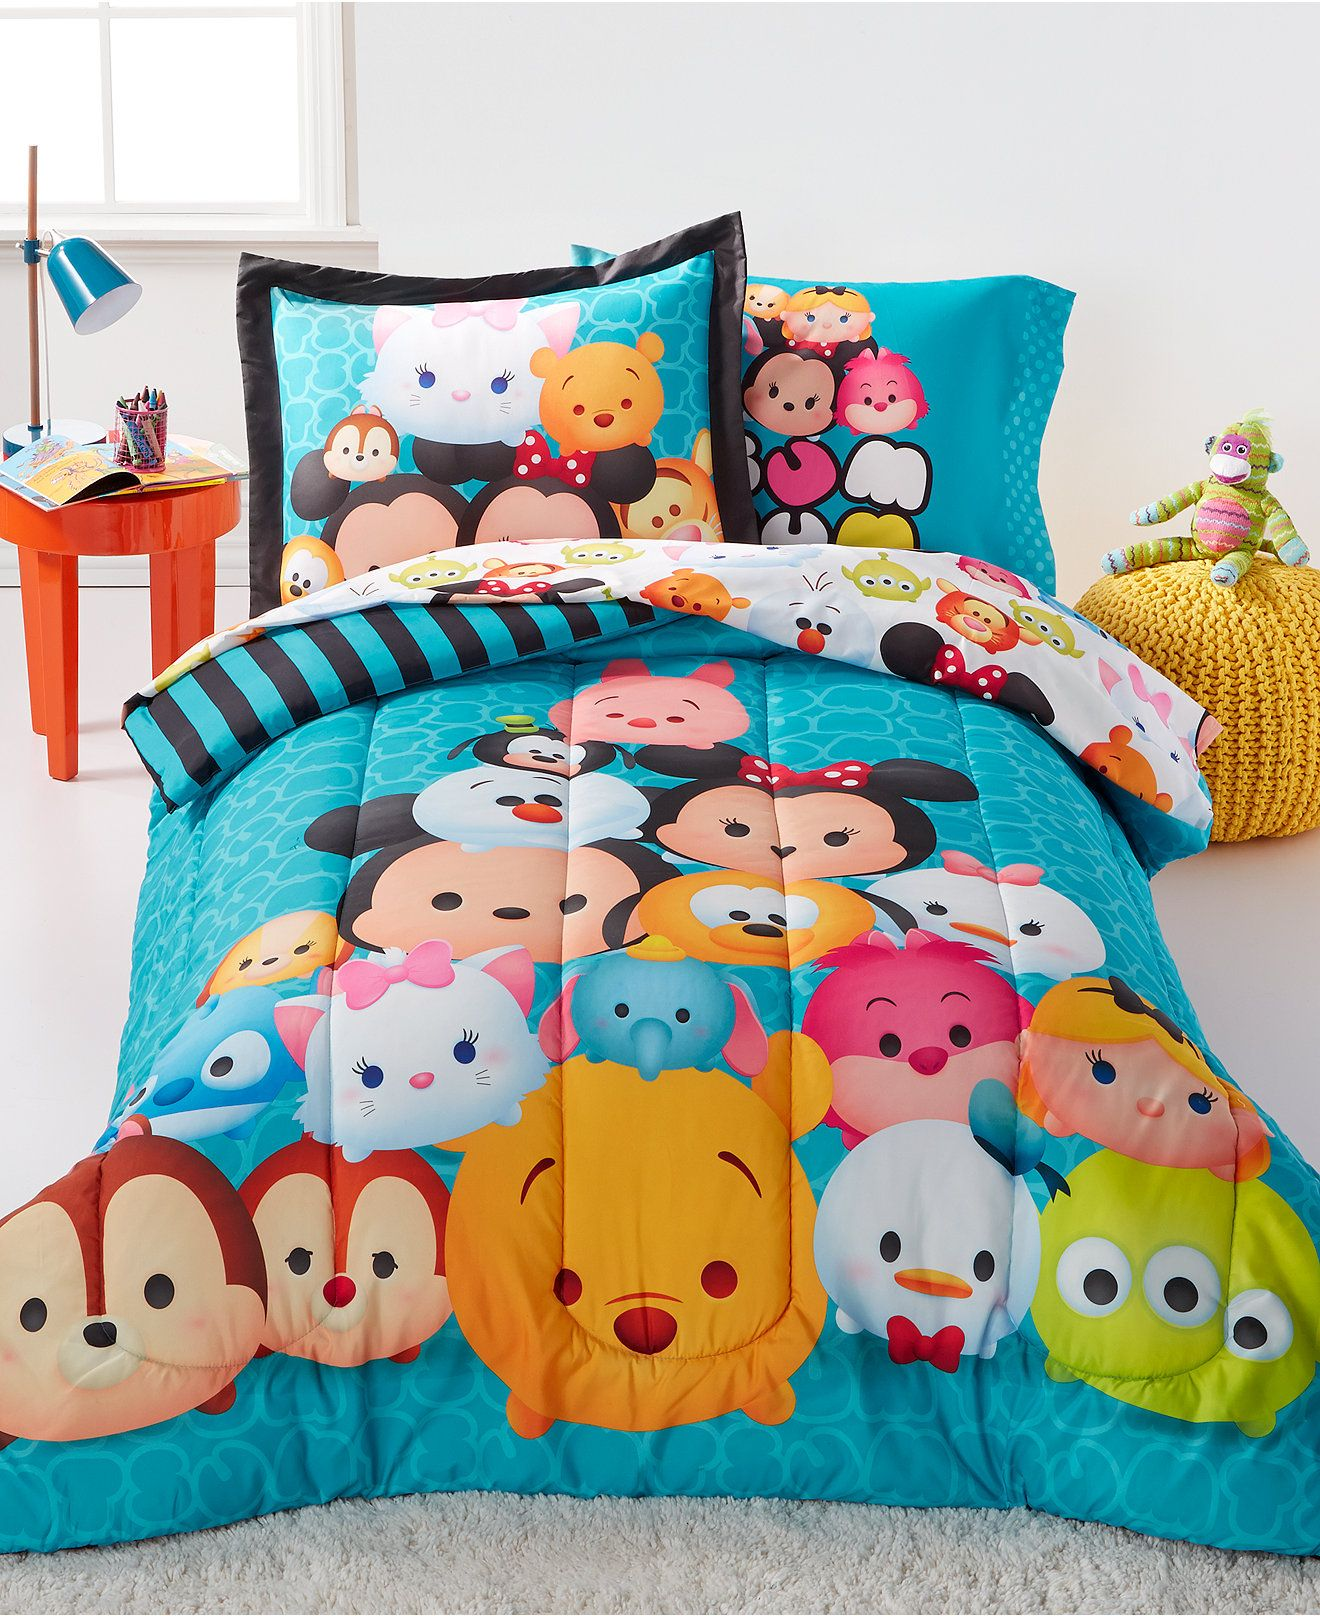 Pcs peter pan bedding set duvet cover fitted sheet pillow case worl - Disney S Tsum Tsum Teal Stacks 5 Piece Comforter Set Bed In A Bag Bed